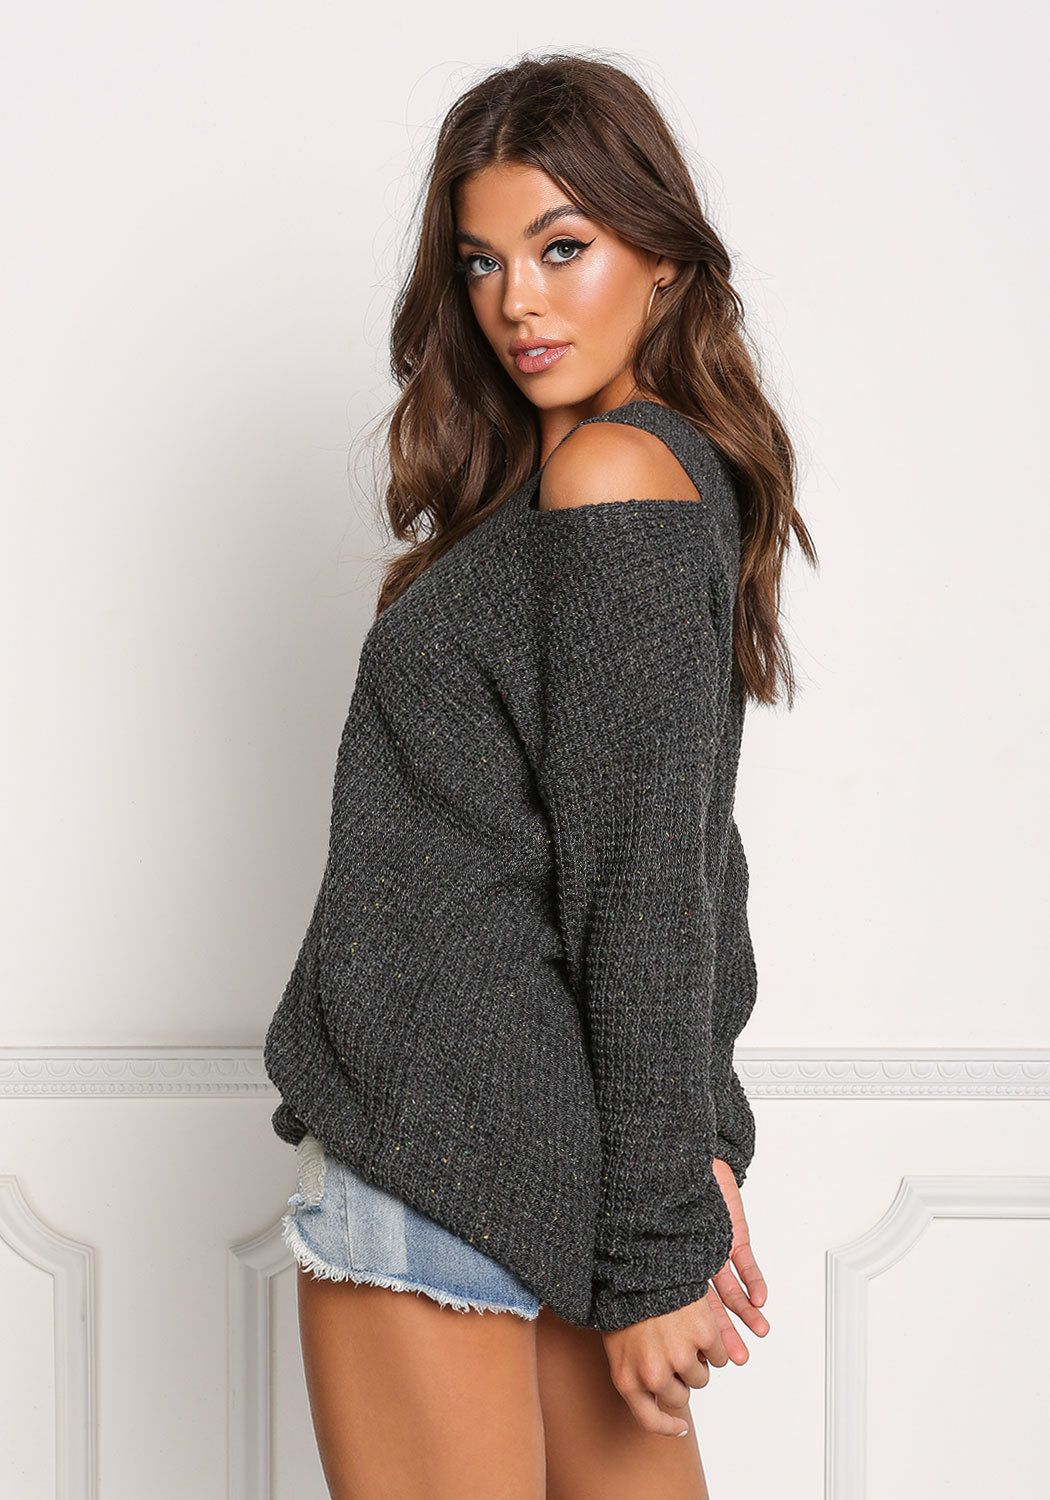 29b31b7d2c7c7 Charcoal Thick Knit Cold Shoulder Sweater Top